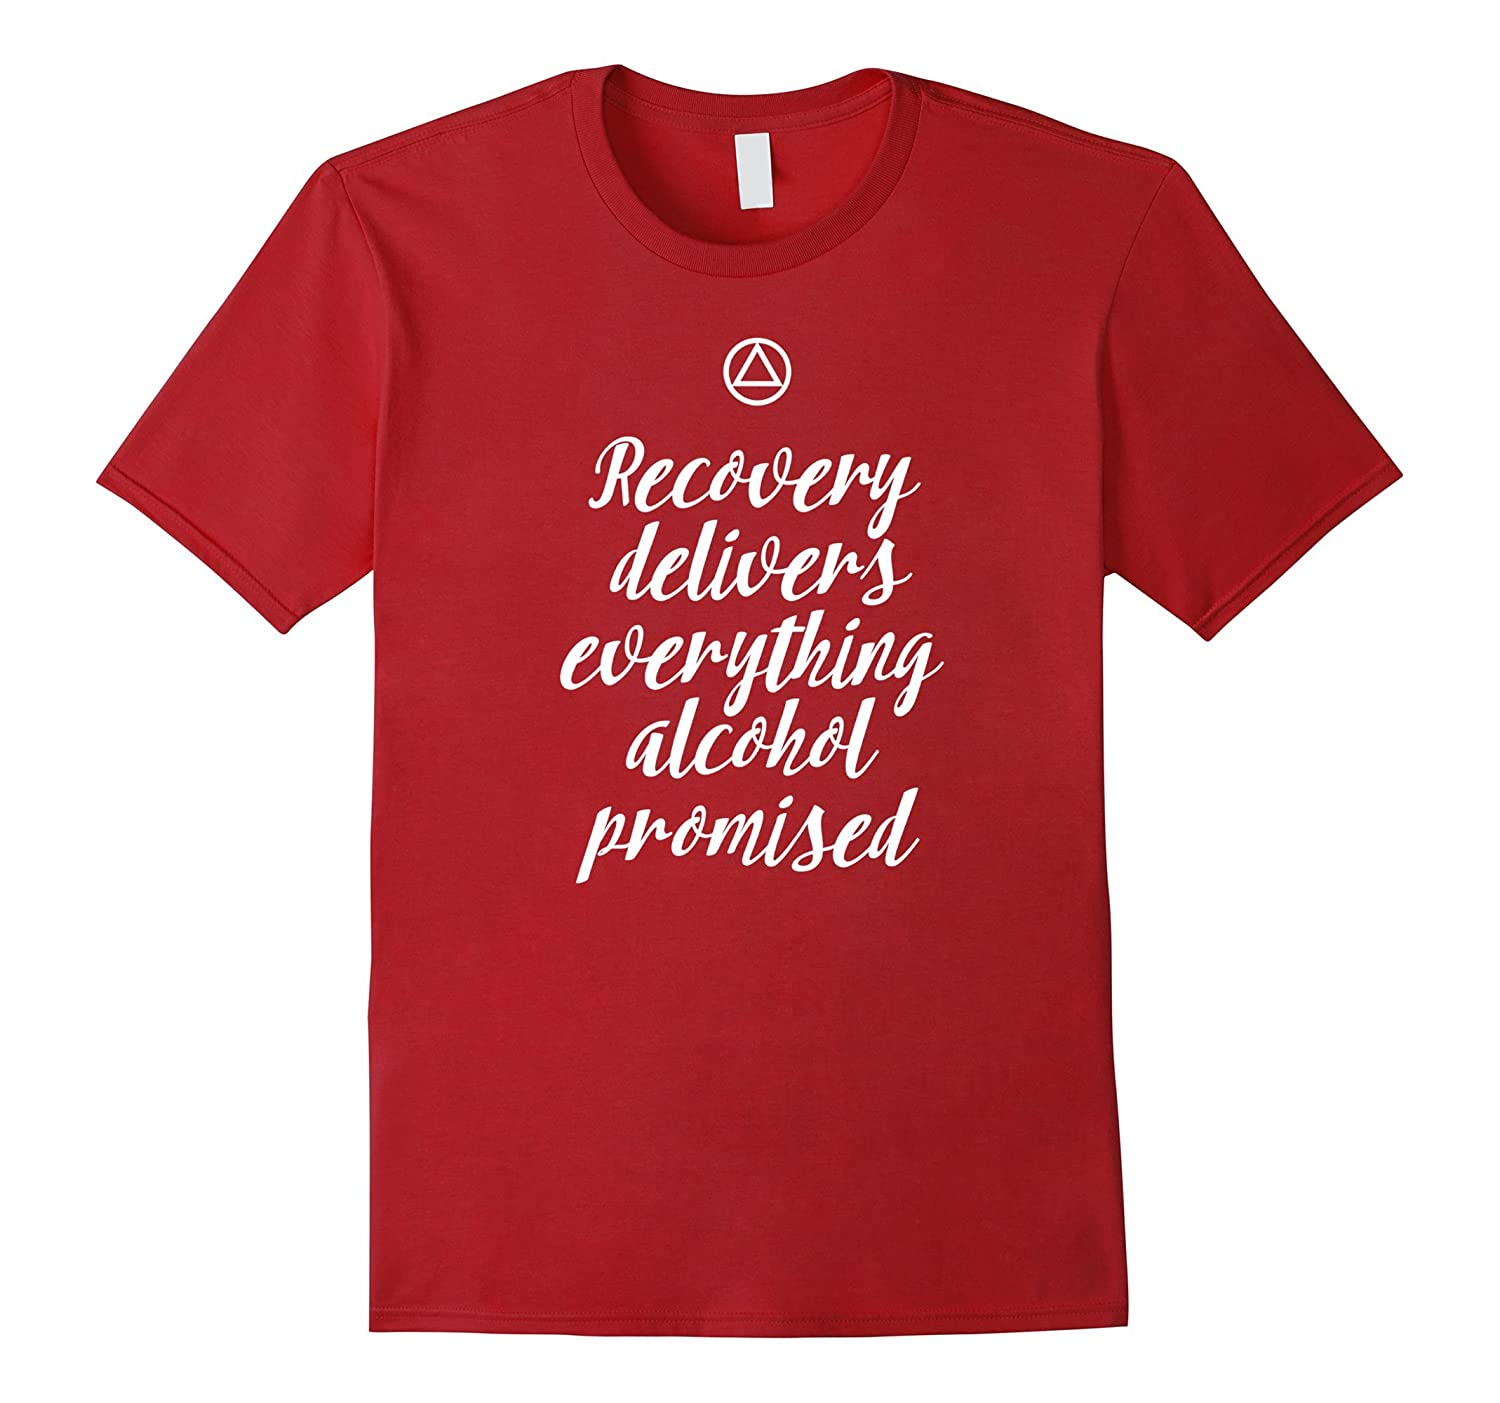 'Recovery Delivers Everything' – AA 12 Step Slogan T Shirt